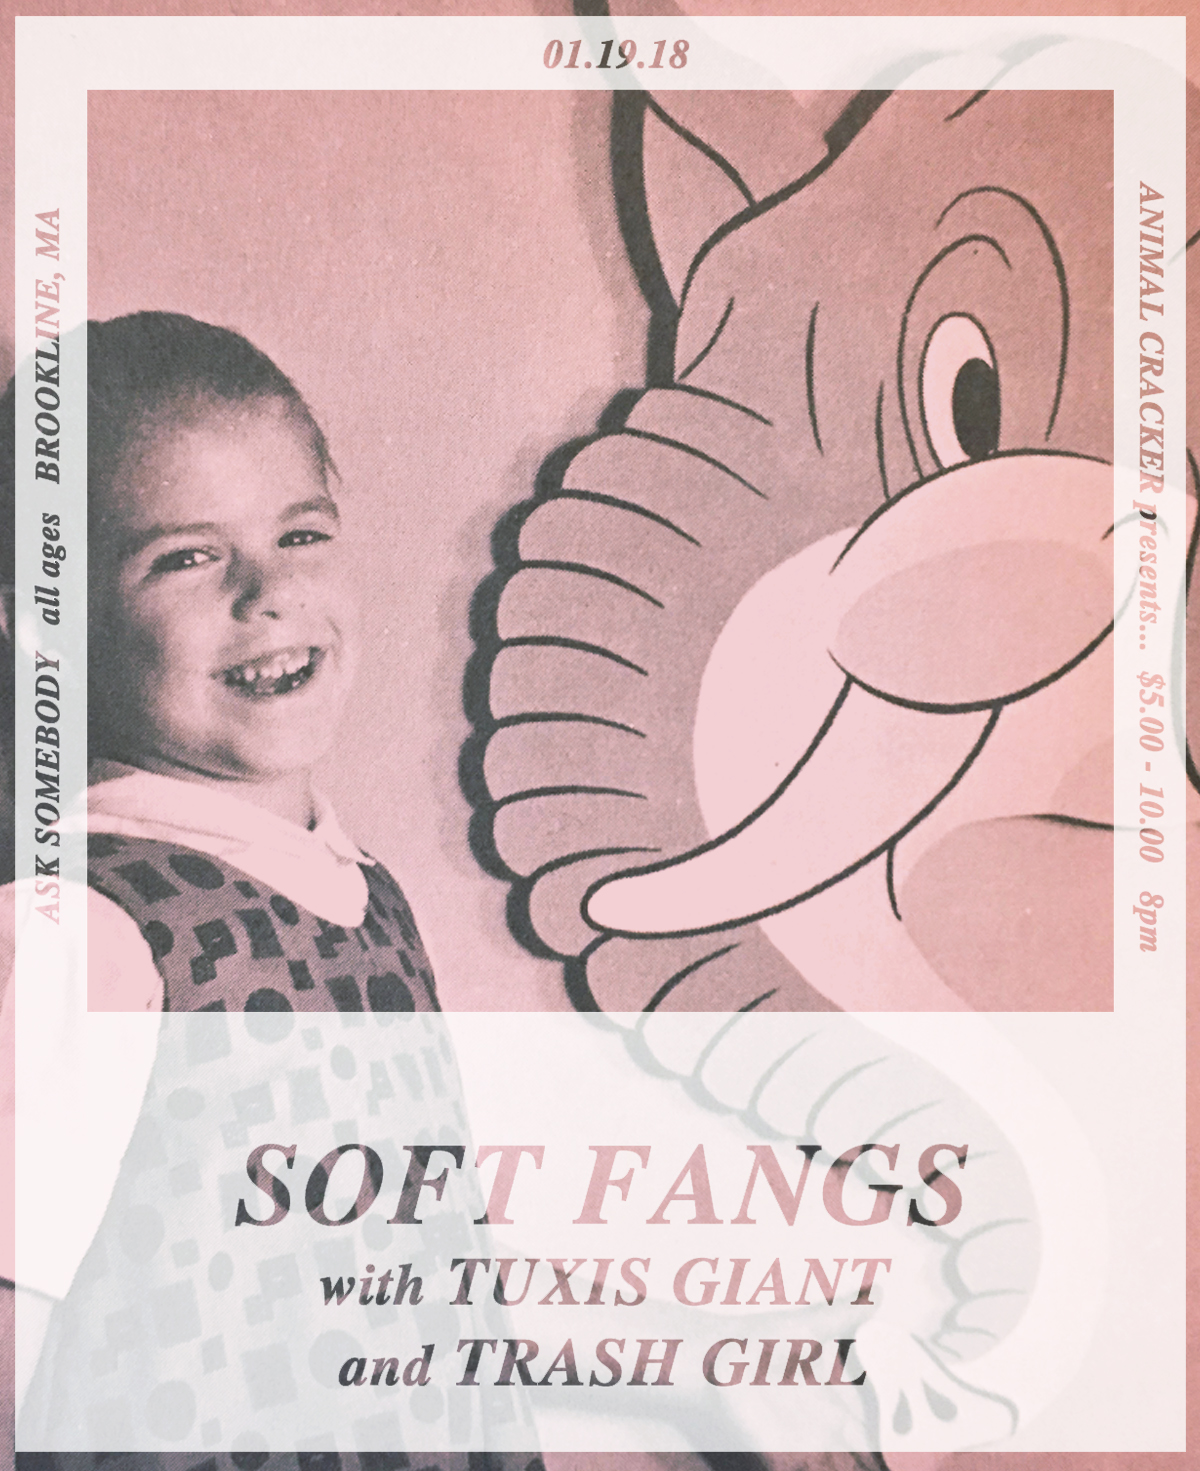 Flyer-SoftFangs011918-Pinks copy.jpg